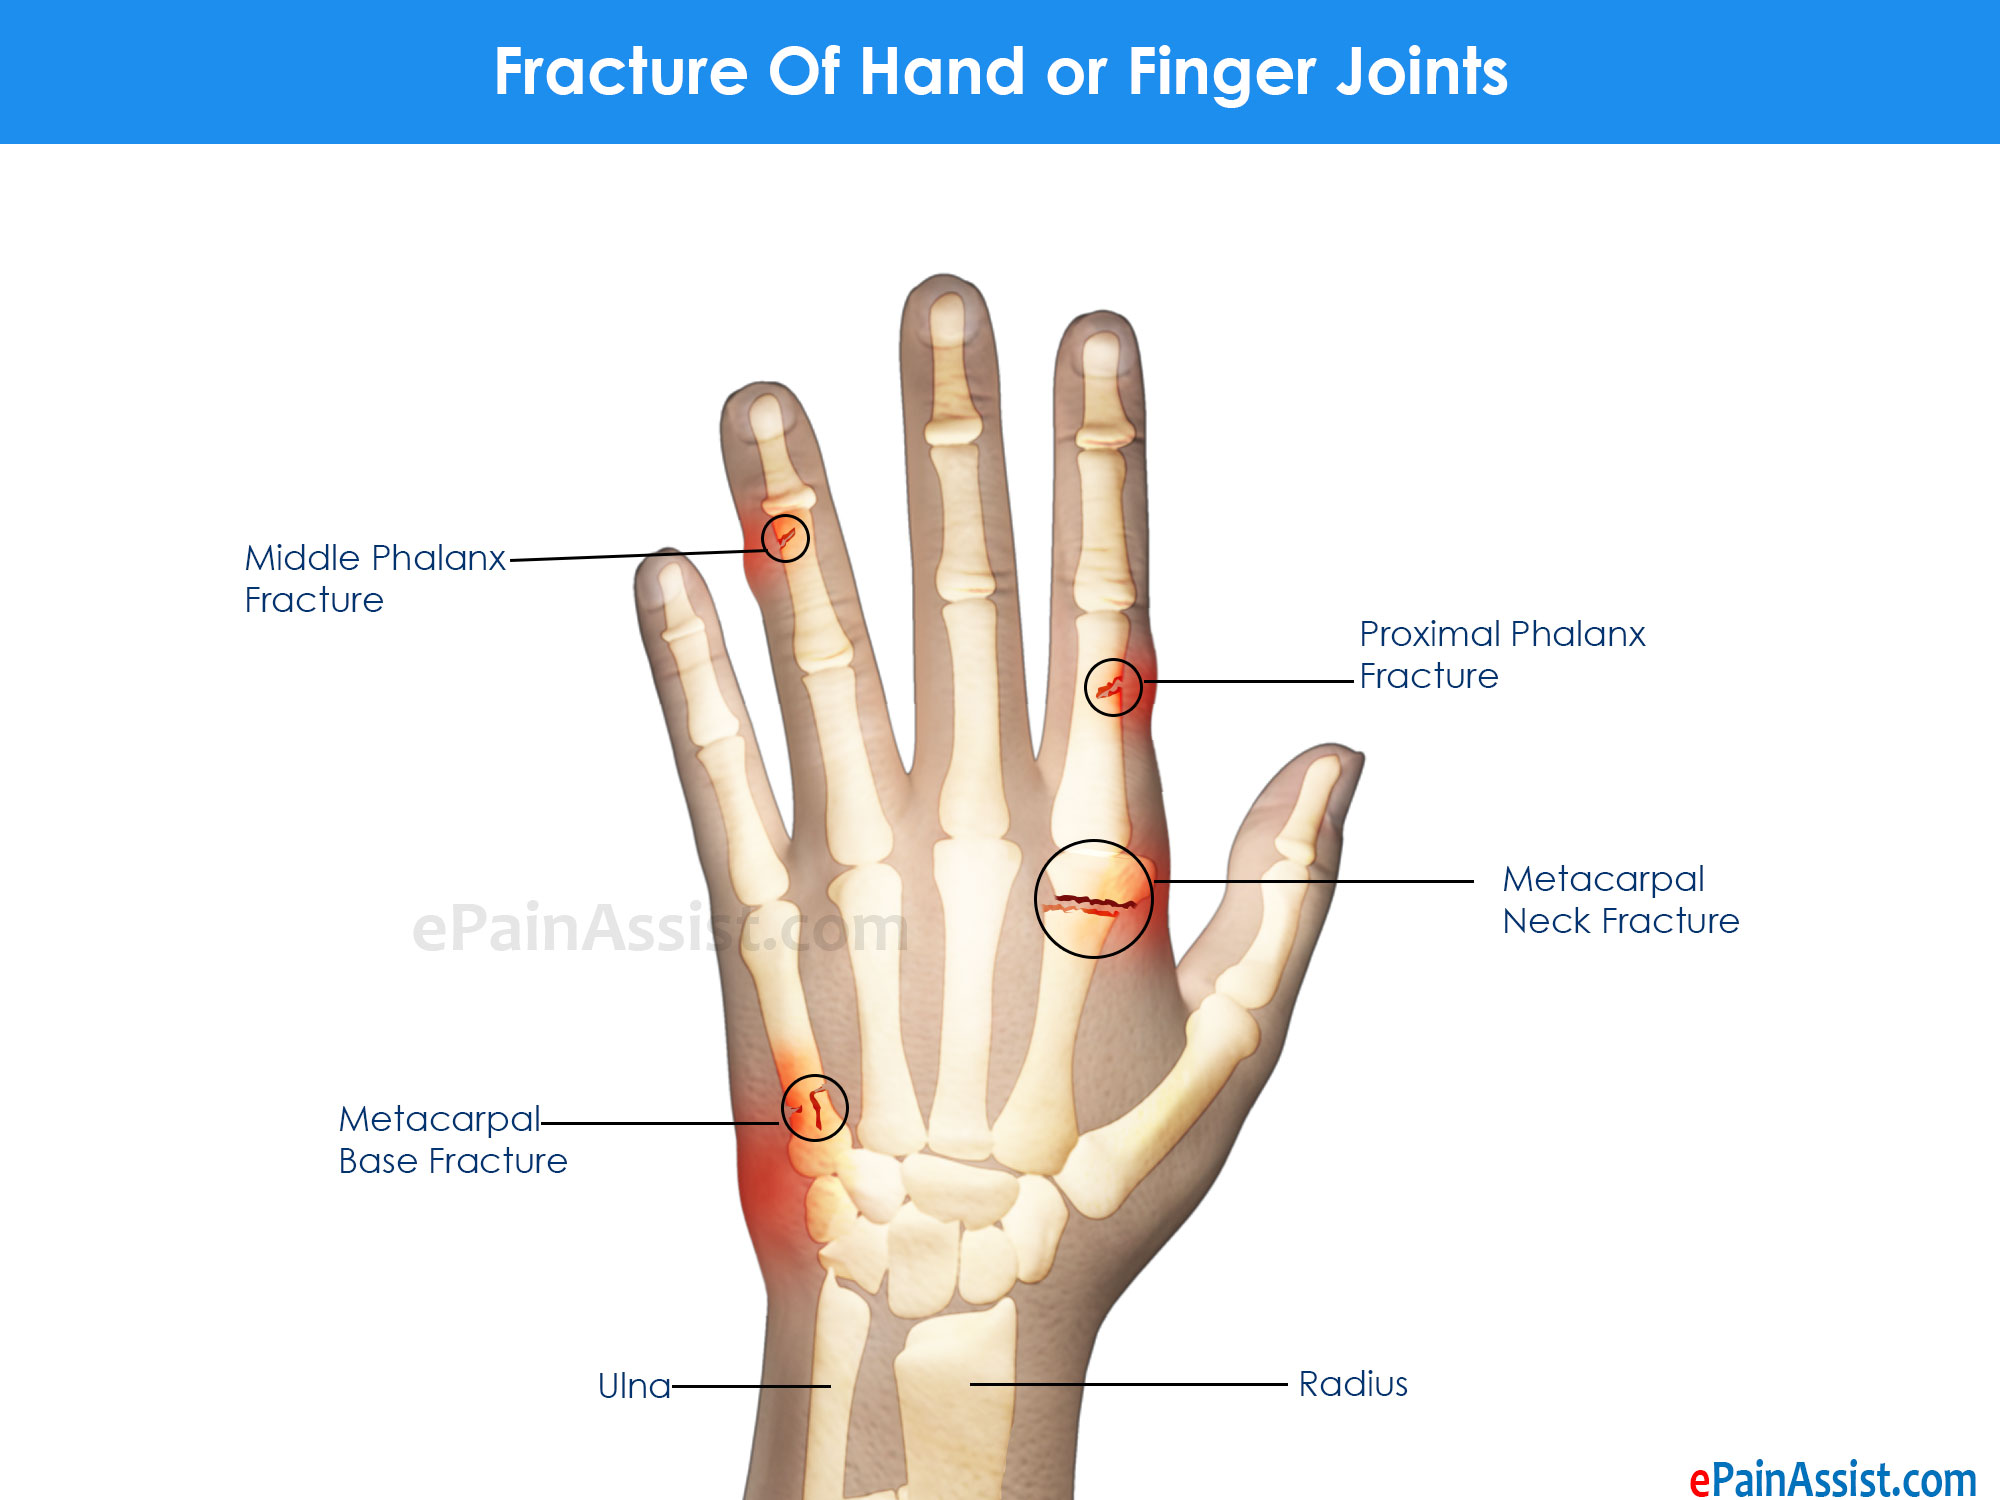 Fracture Of Hand or Finger Joints